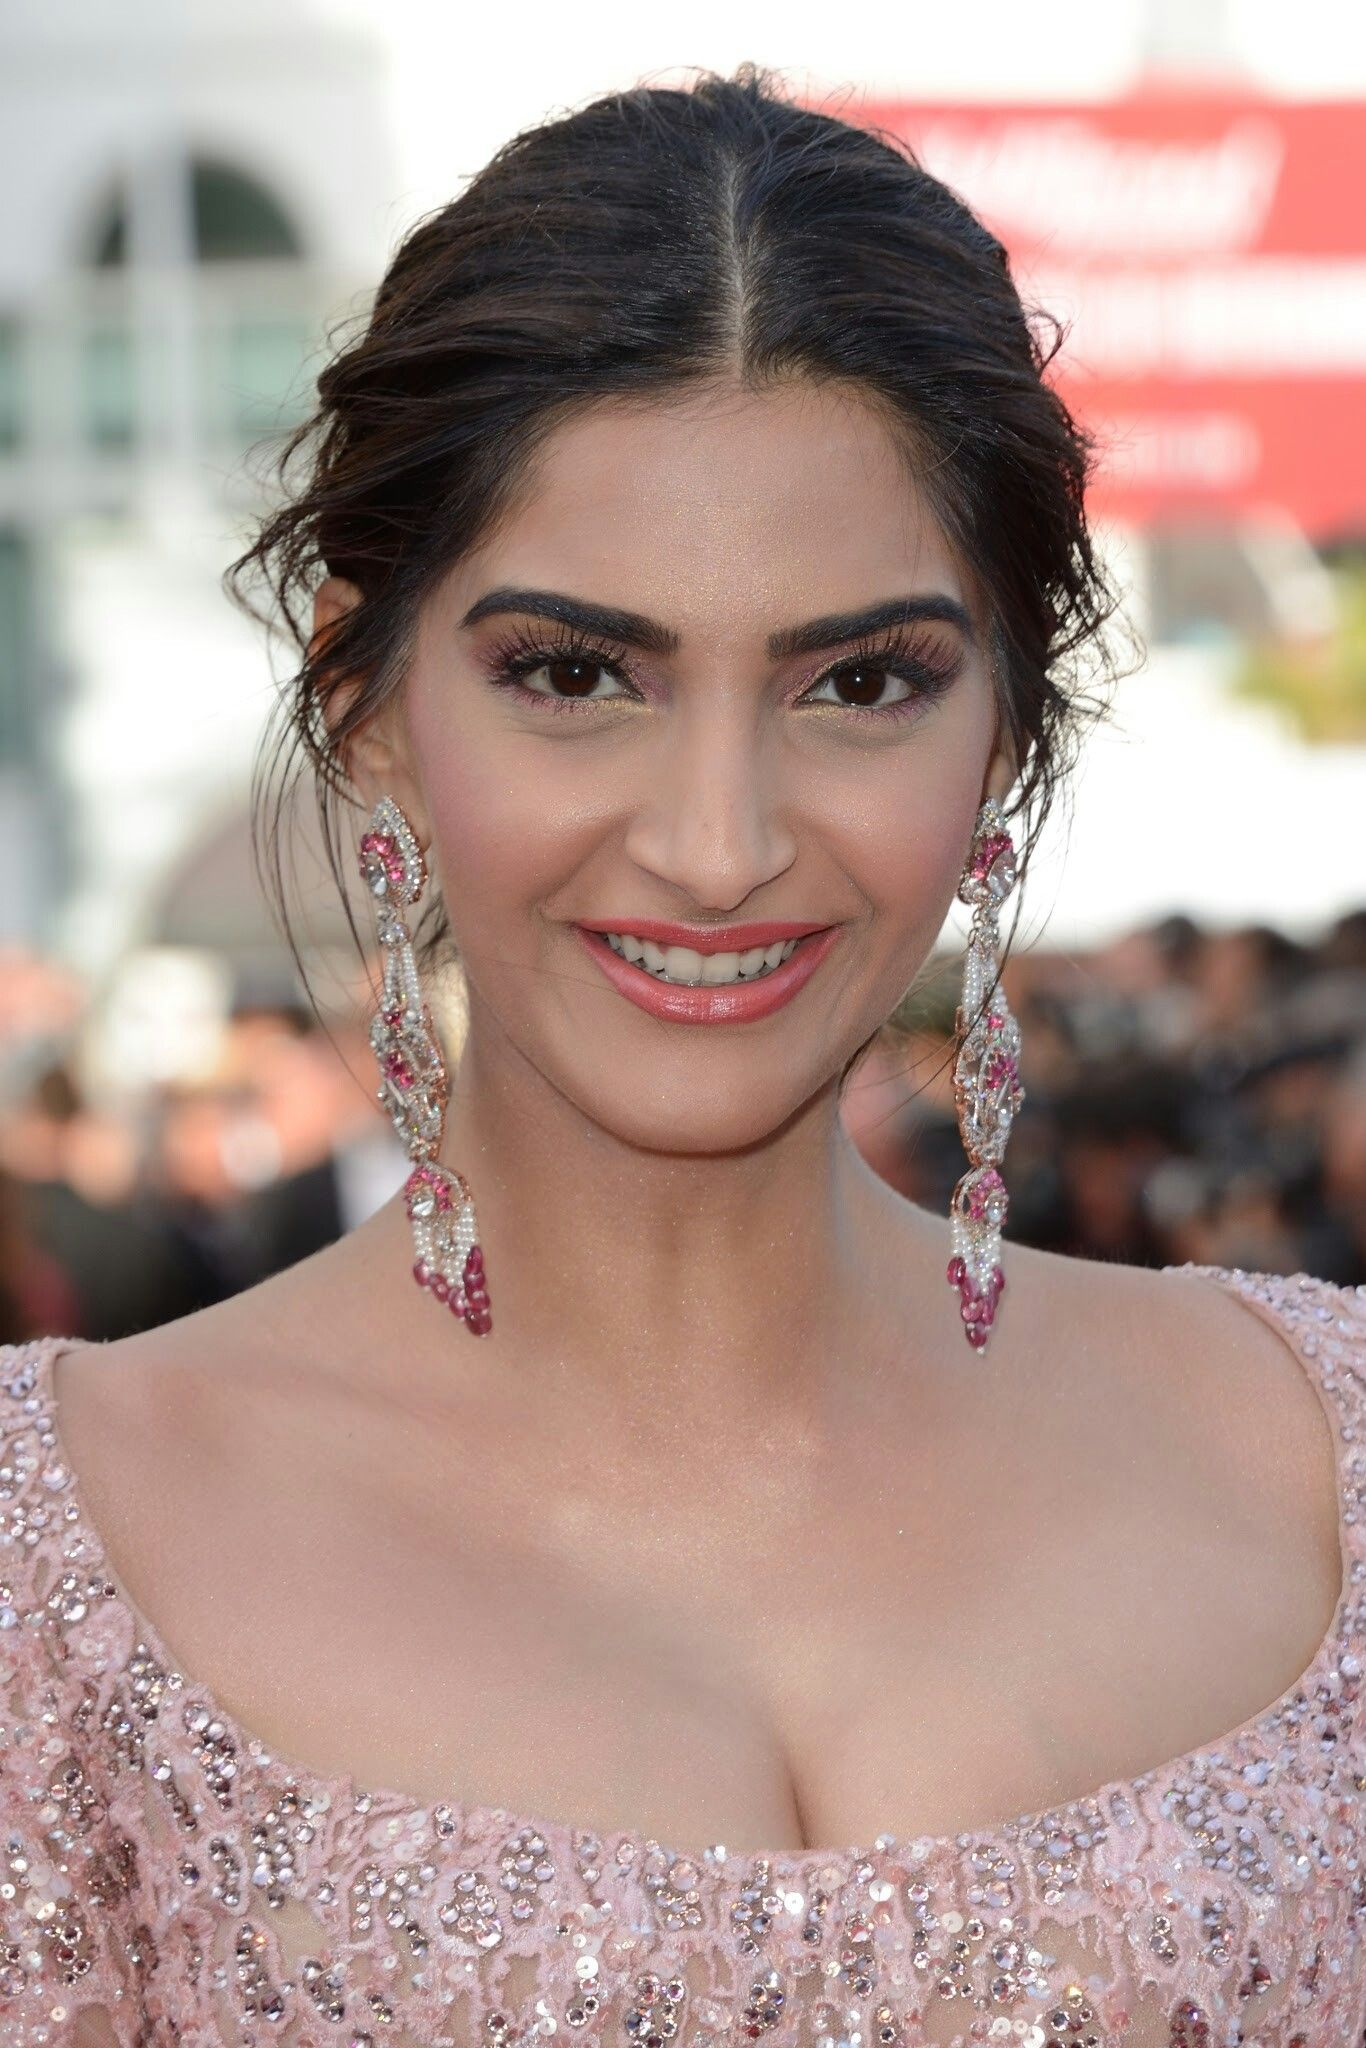 Sonam Kapoor Cannes 2017 Photos South Indian Actress Festival 2017 Cannes Film